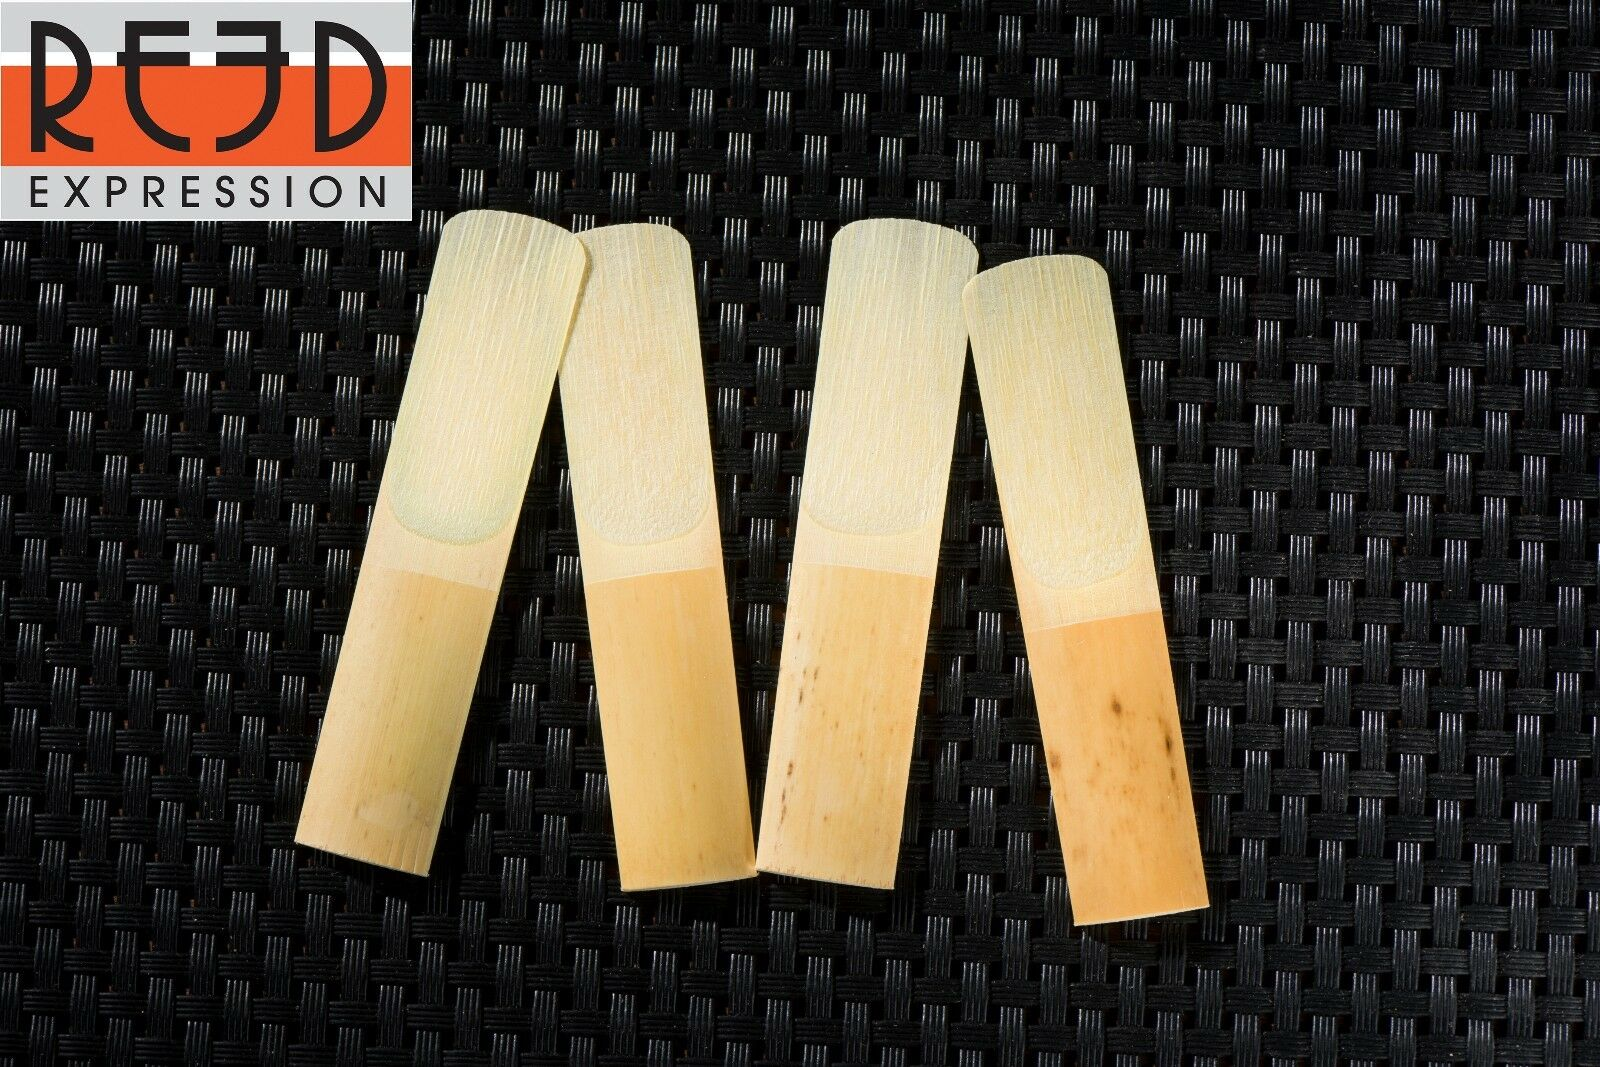 Pack of 10 Dilwe Saxophone Reeds Strength 2.5 Alto Saxophone Sax Bamboo Reeds with Plastic Case